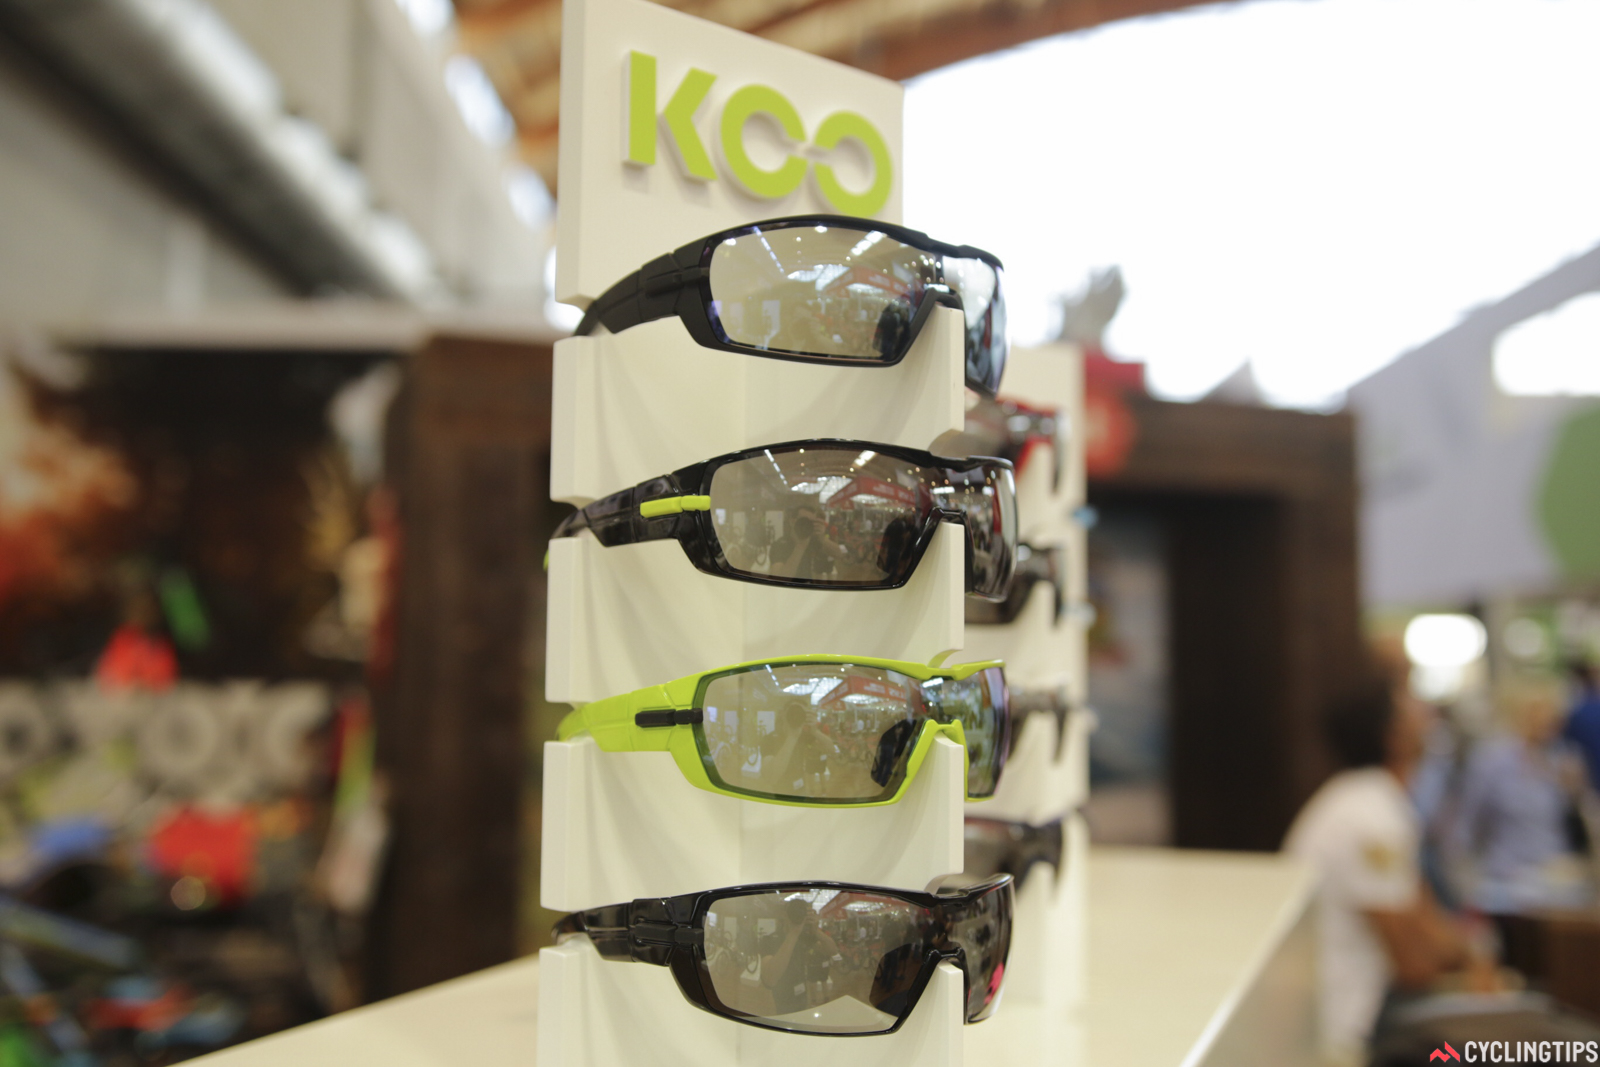 Made in Italy, Kask sunglasses are now just a month away. The arms fold in a unique swinging arc, allowing finite fitting options too. €199 and they'll include an extra lens and other pieces.